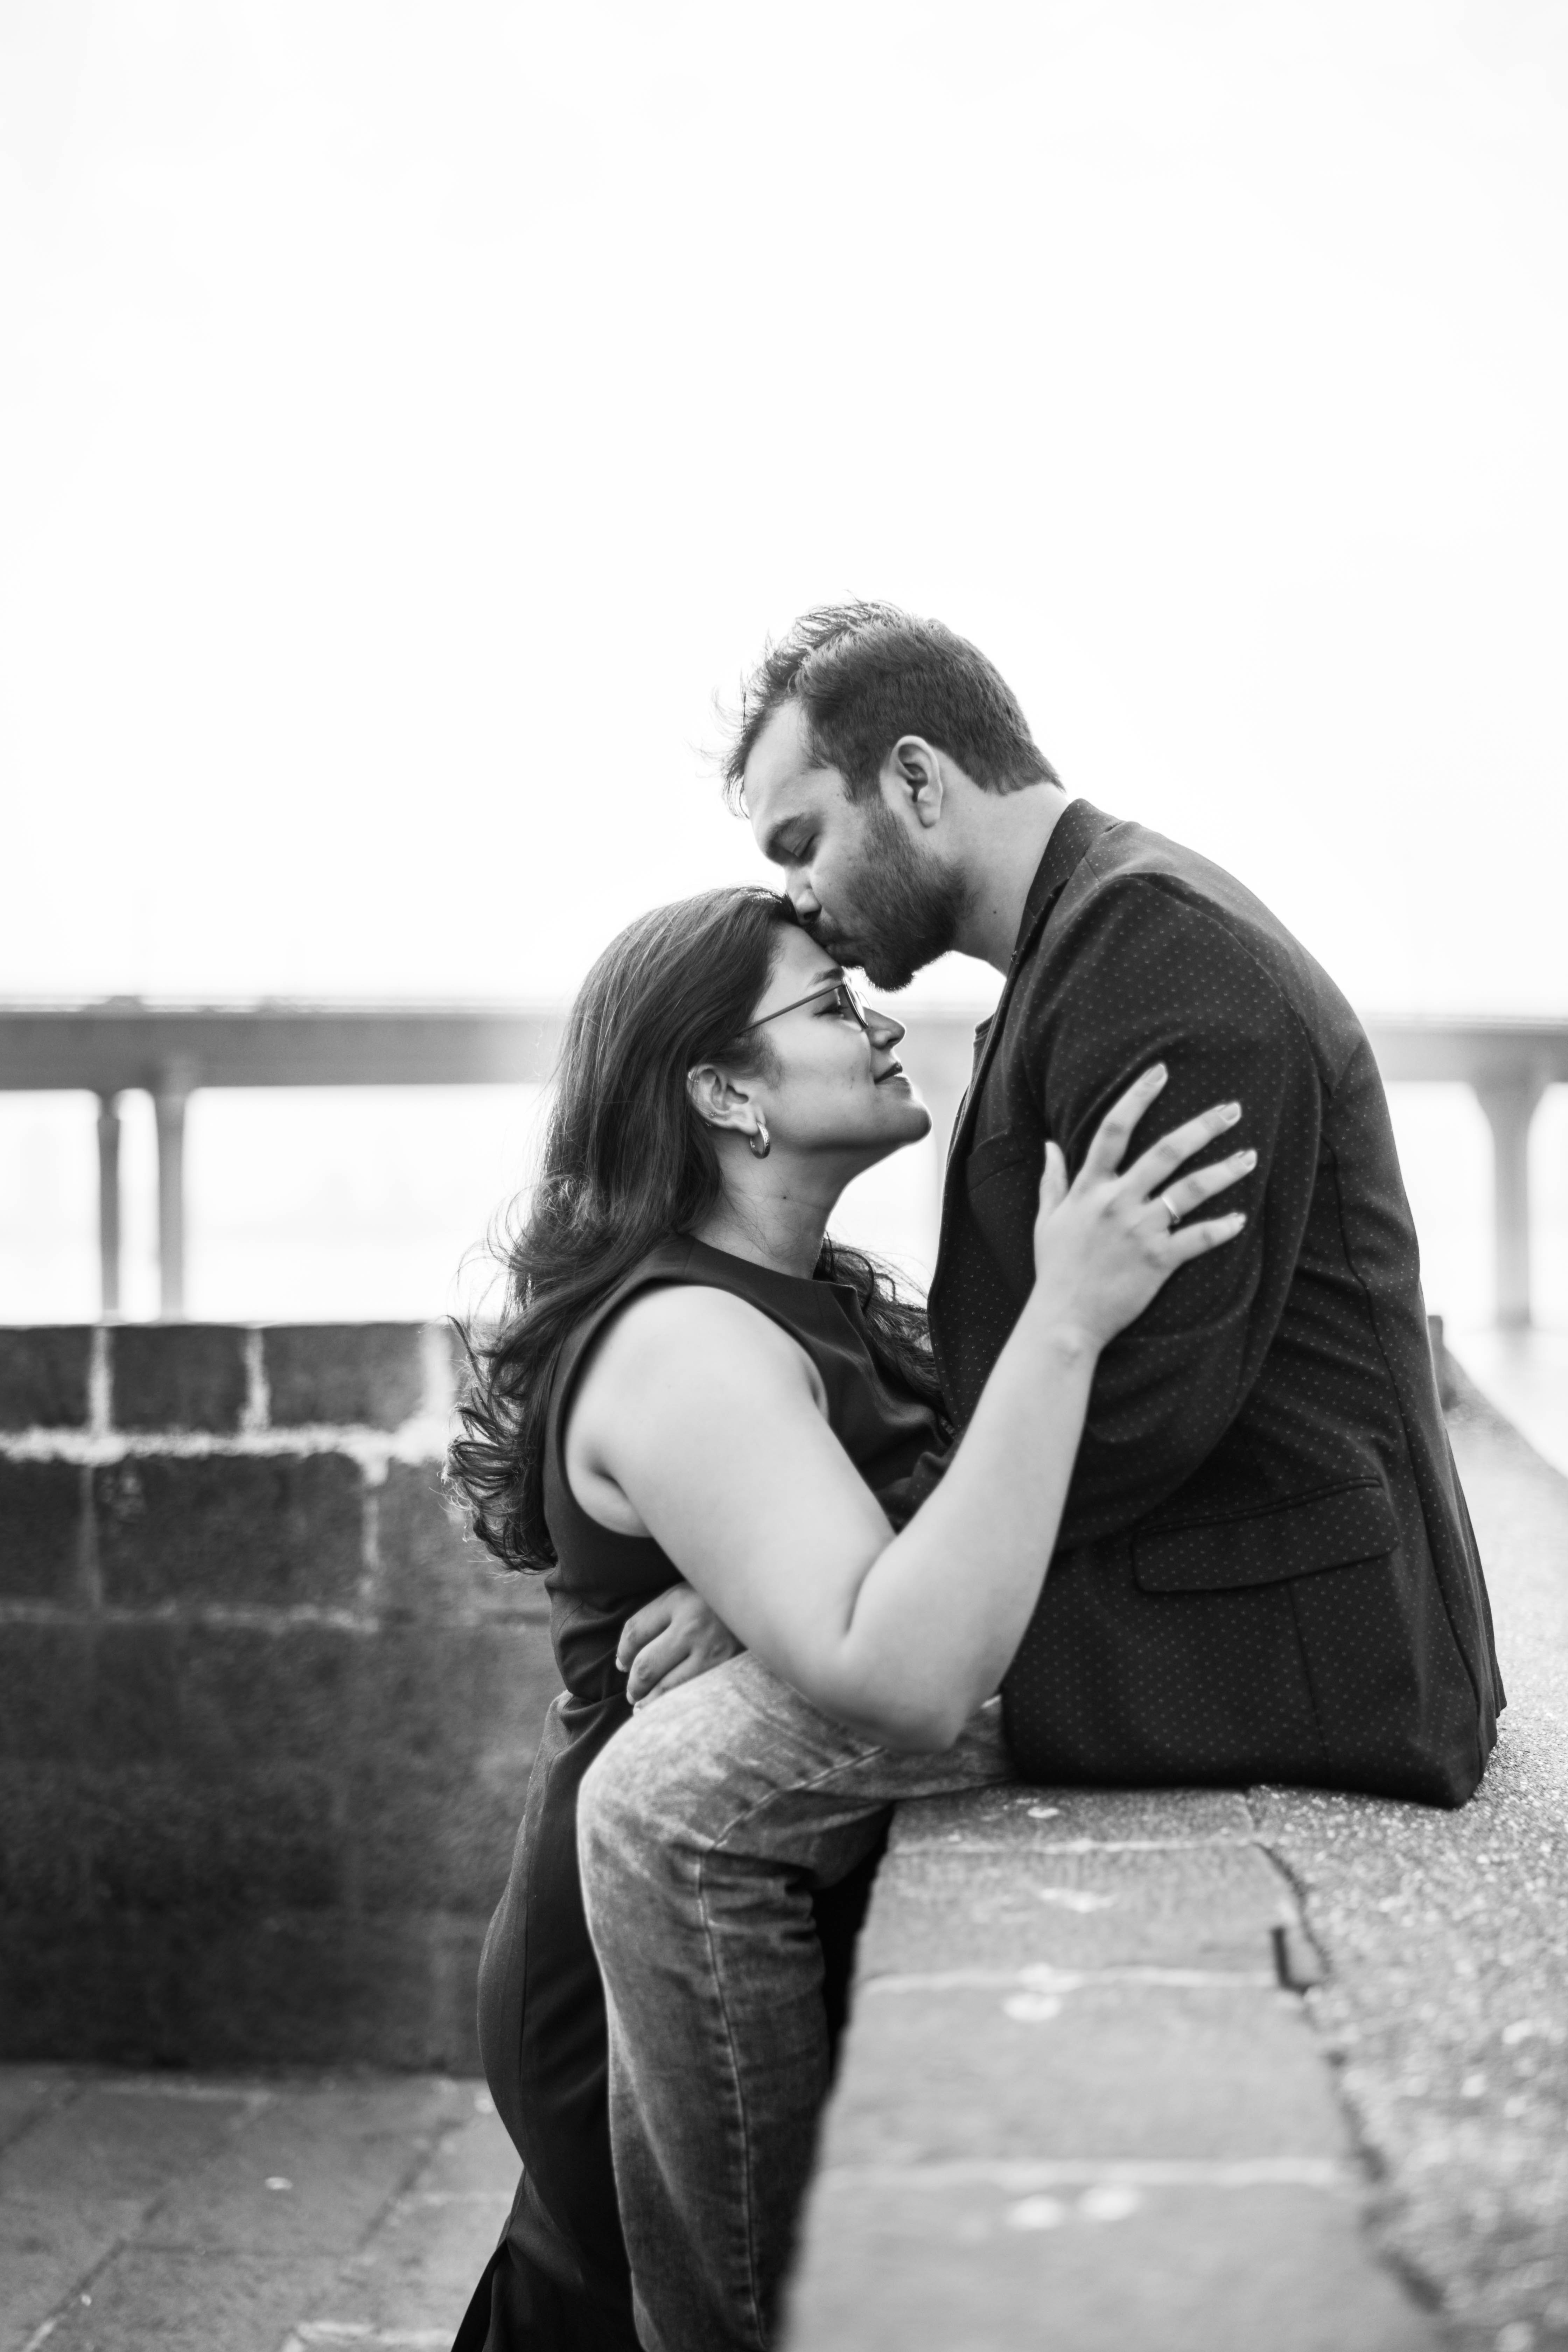 Man in black coat sitting while kissing woman photo